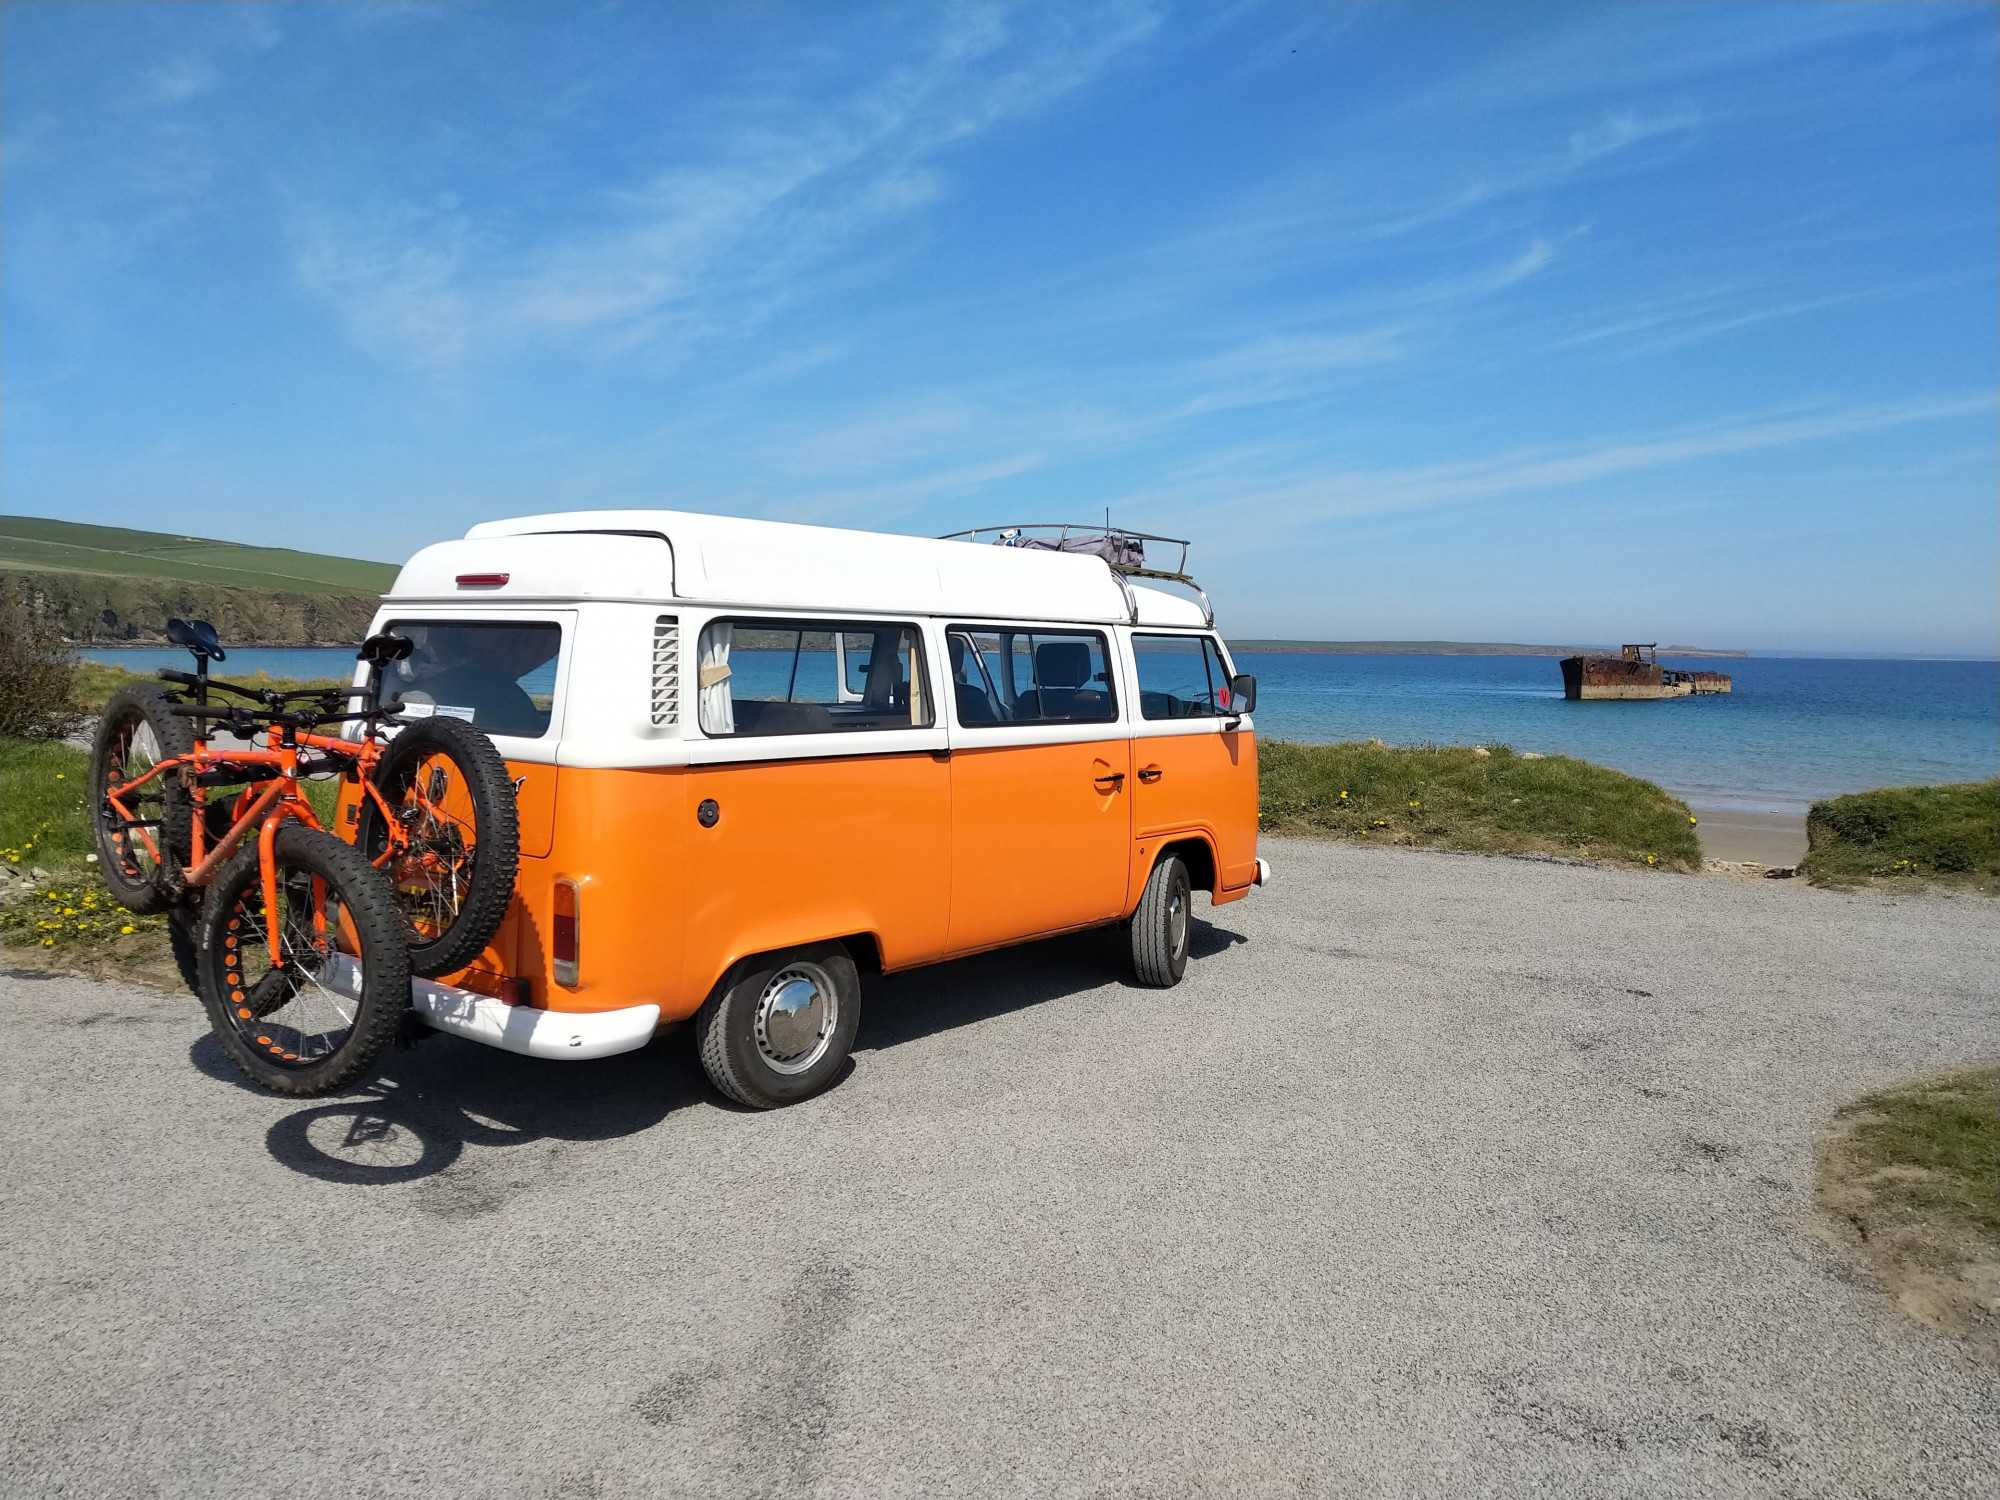 A VW T2 Classic Campervan called Thunder-betty and Van with Fat bikes. for hire in orkney, Orkney Islands